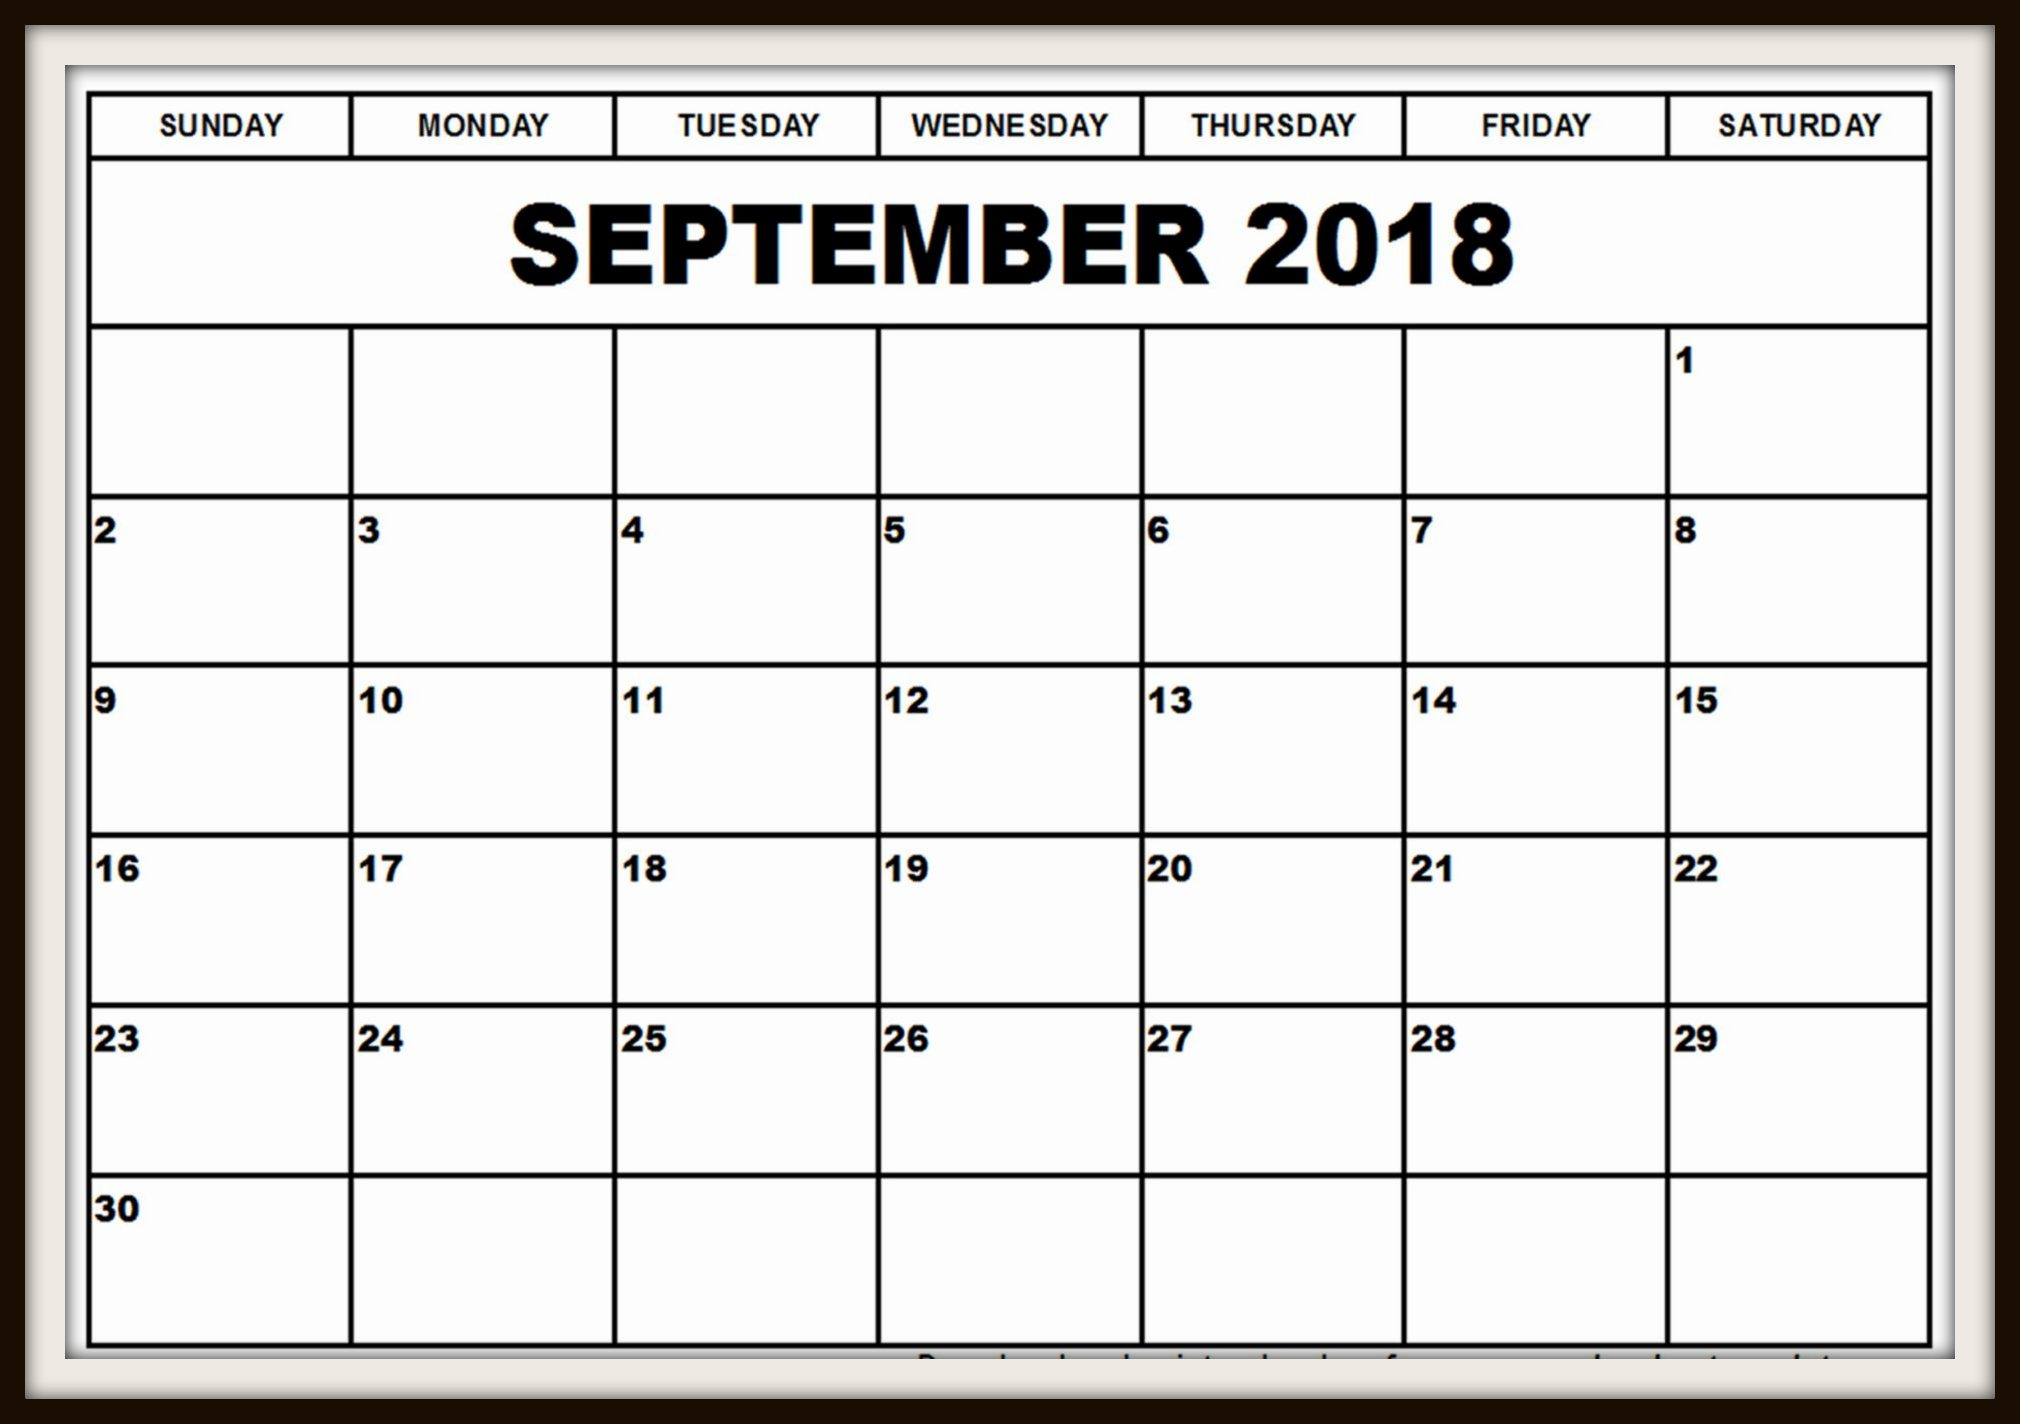 September 2018 Calendar with Holidays UK